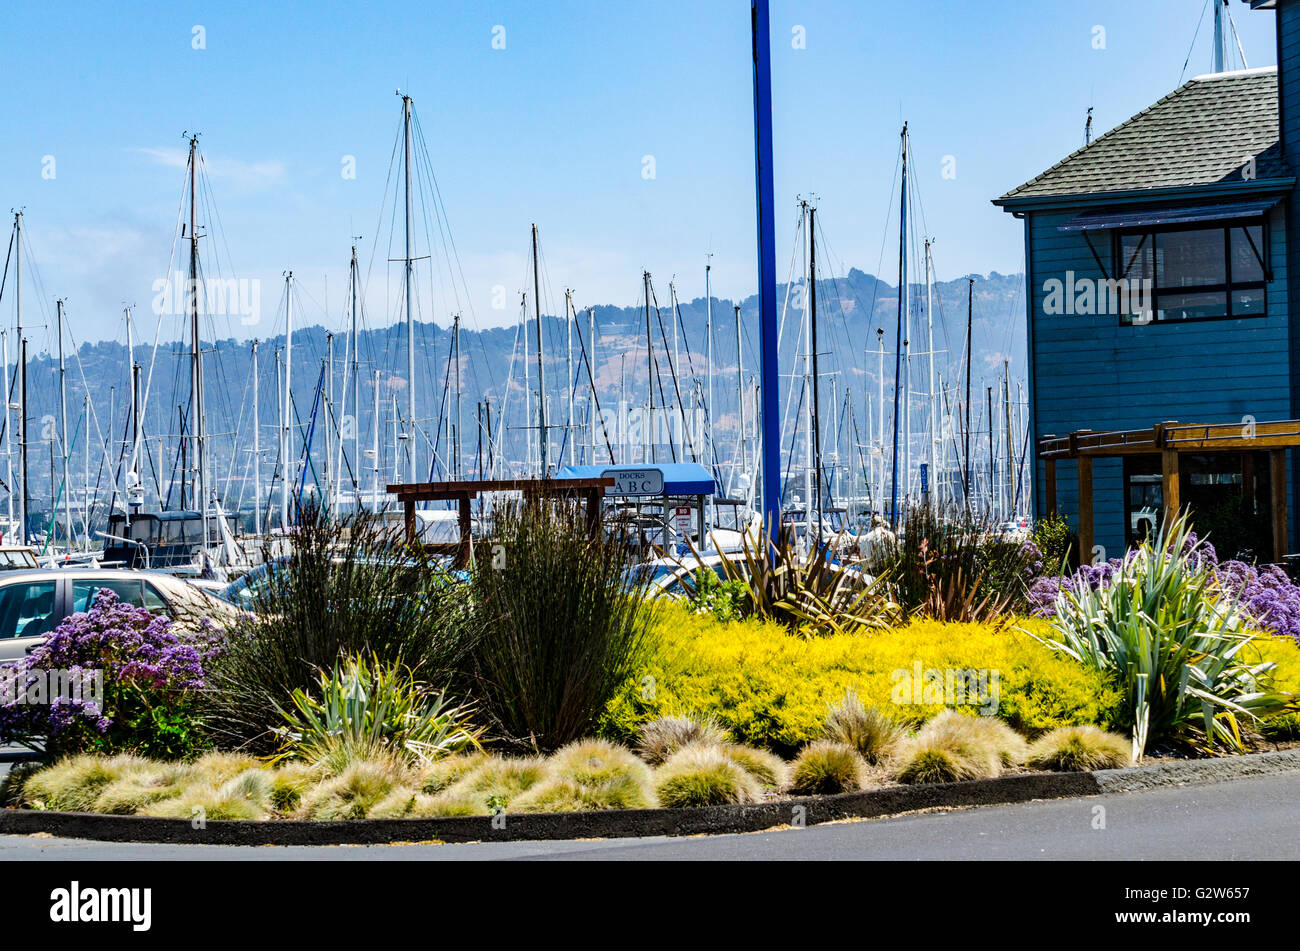 Emery Cove Yacht Harbor on Powell Street in Emeyrville California - Stock Image